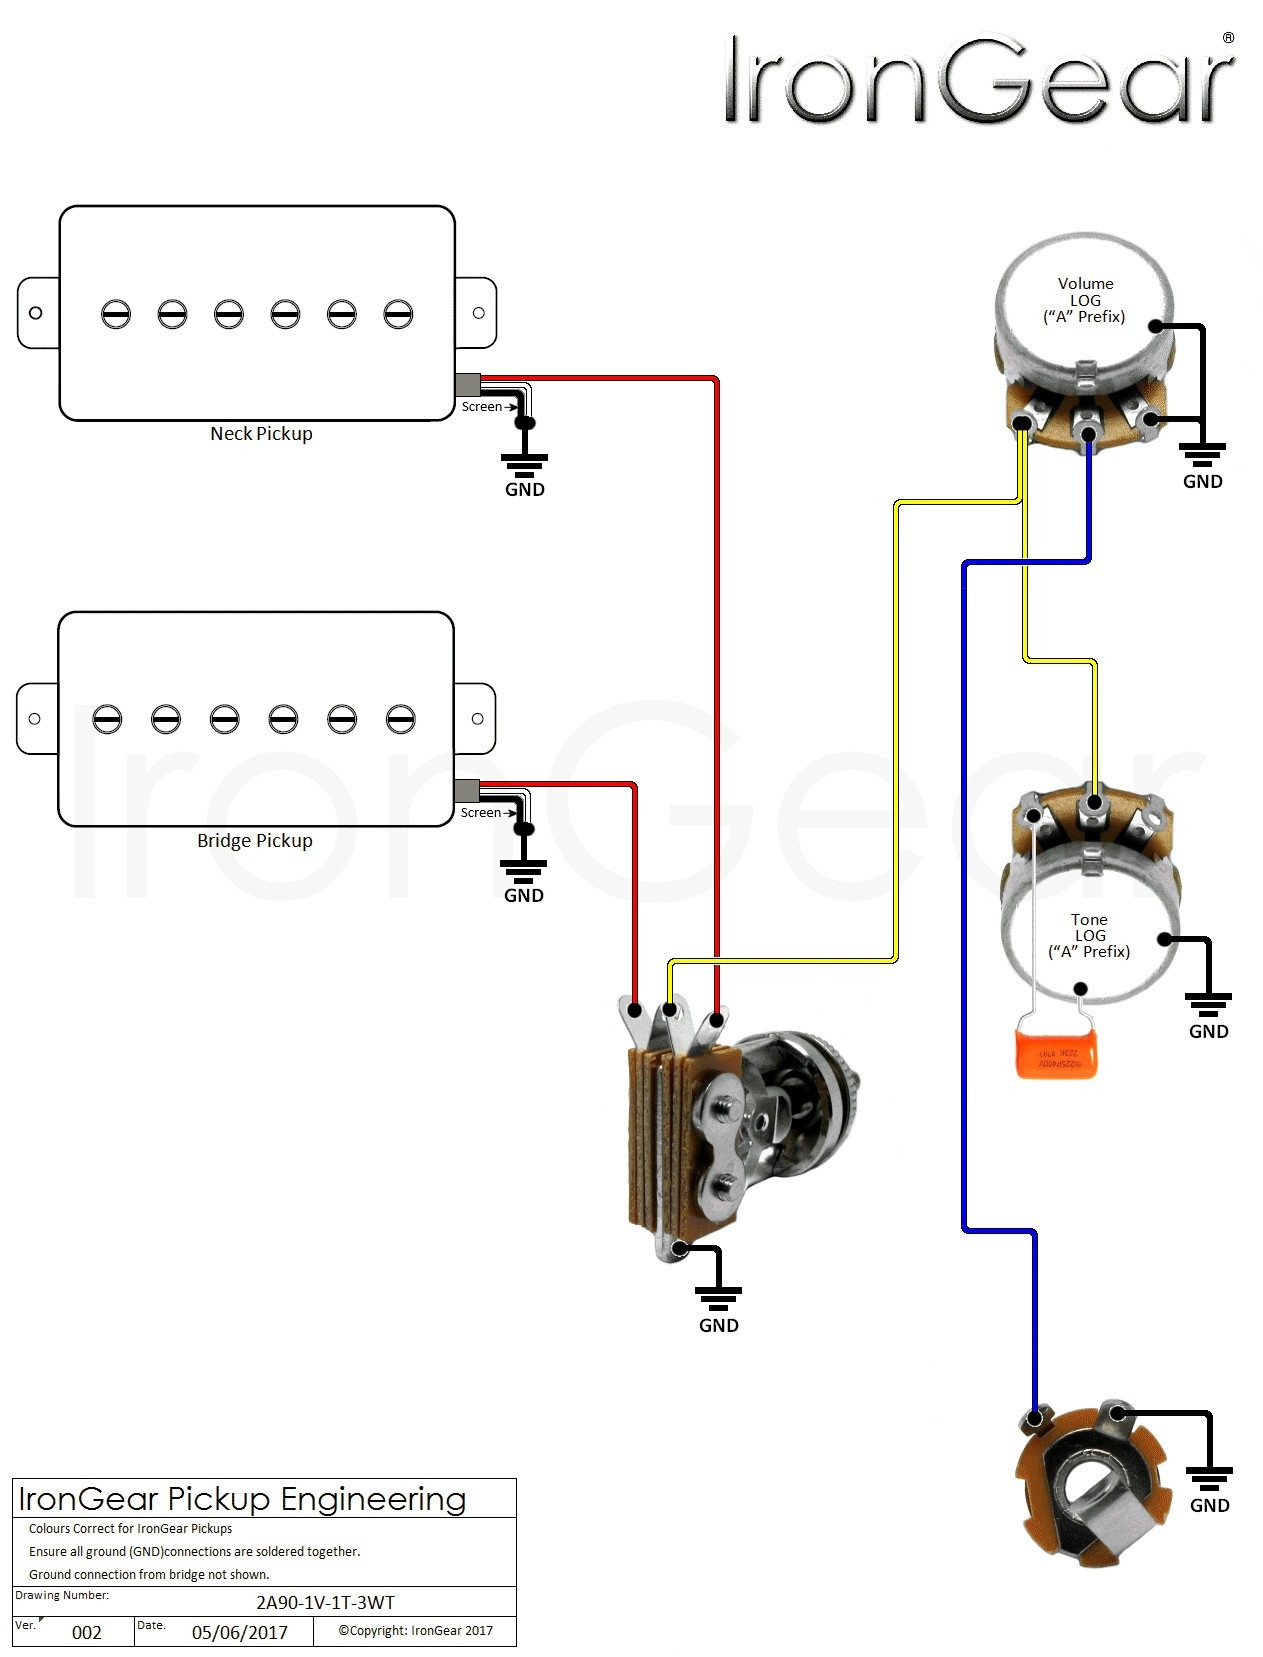 p90 pickup wiring diagram Collection-P90 Wiring Diagram Guitar Fresh Wiring Diagram Guitar 3 Way Switch New Wiring Diagram for 3 16-g